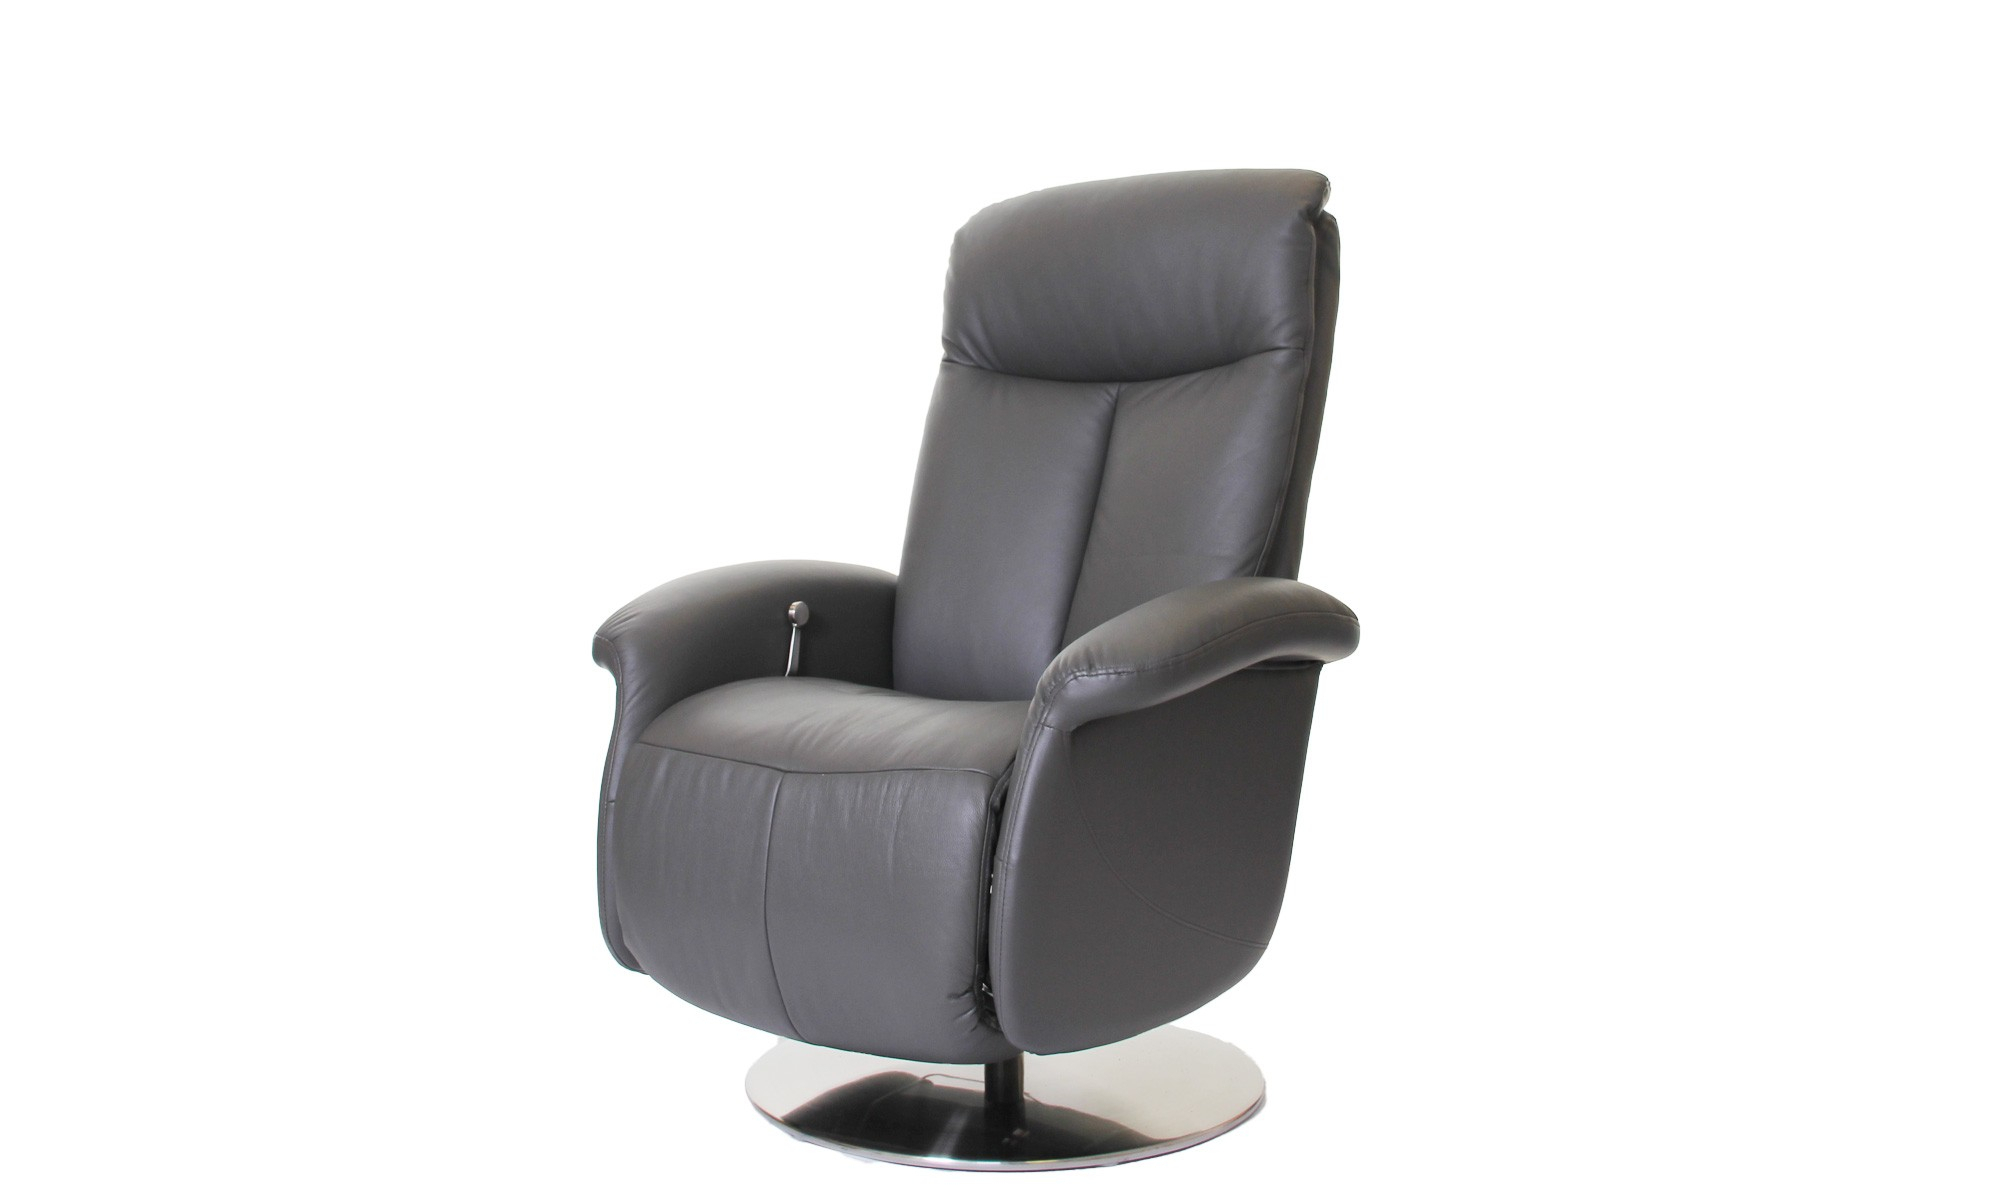 Probably Outrageous Nice Leather Reclining Armchair And Footstool Pertaining To Amala Dark Grey Leather Reclining Swivel Chairs (Image 22 of 25)